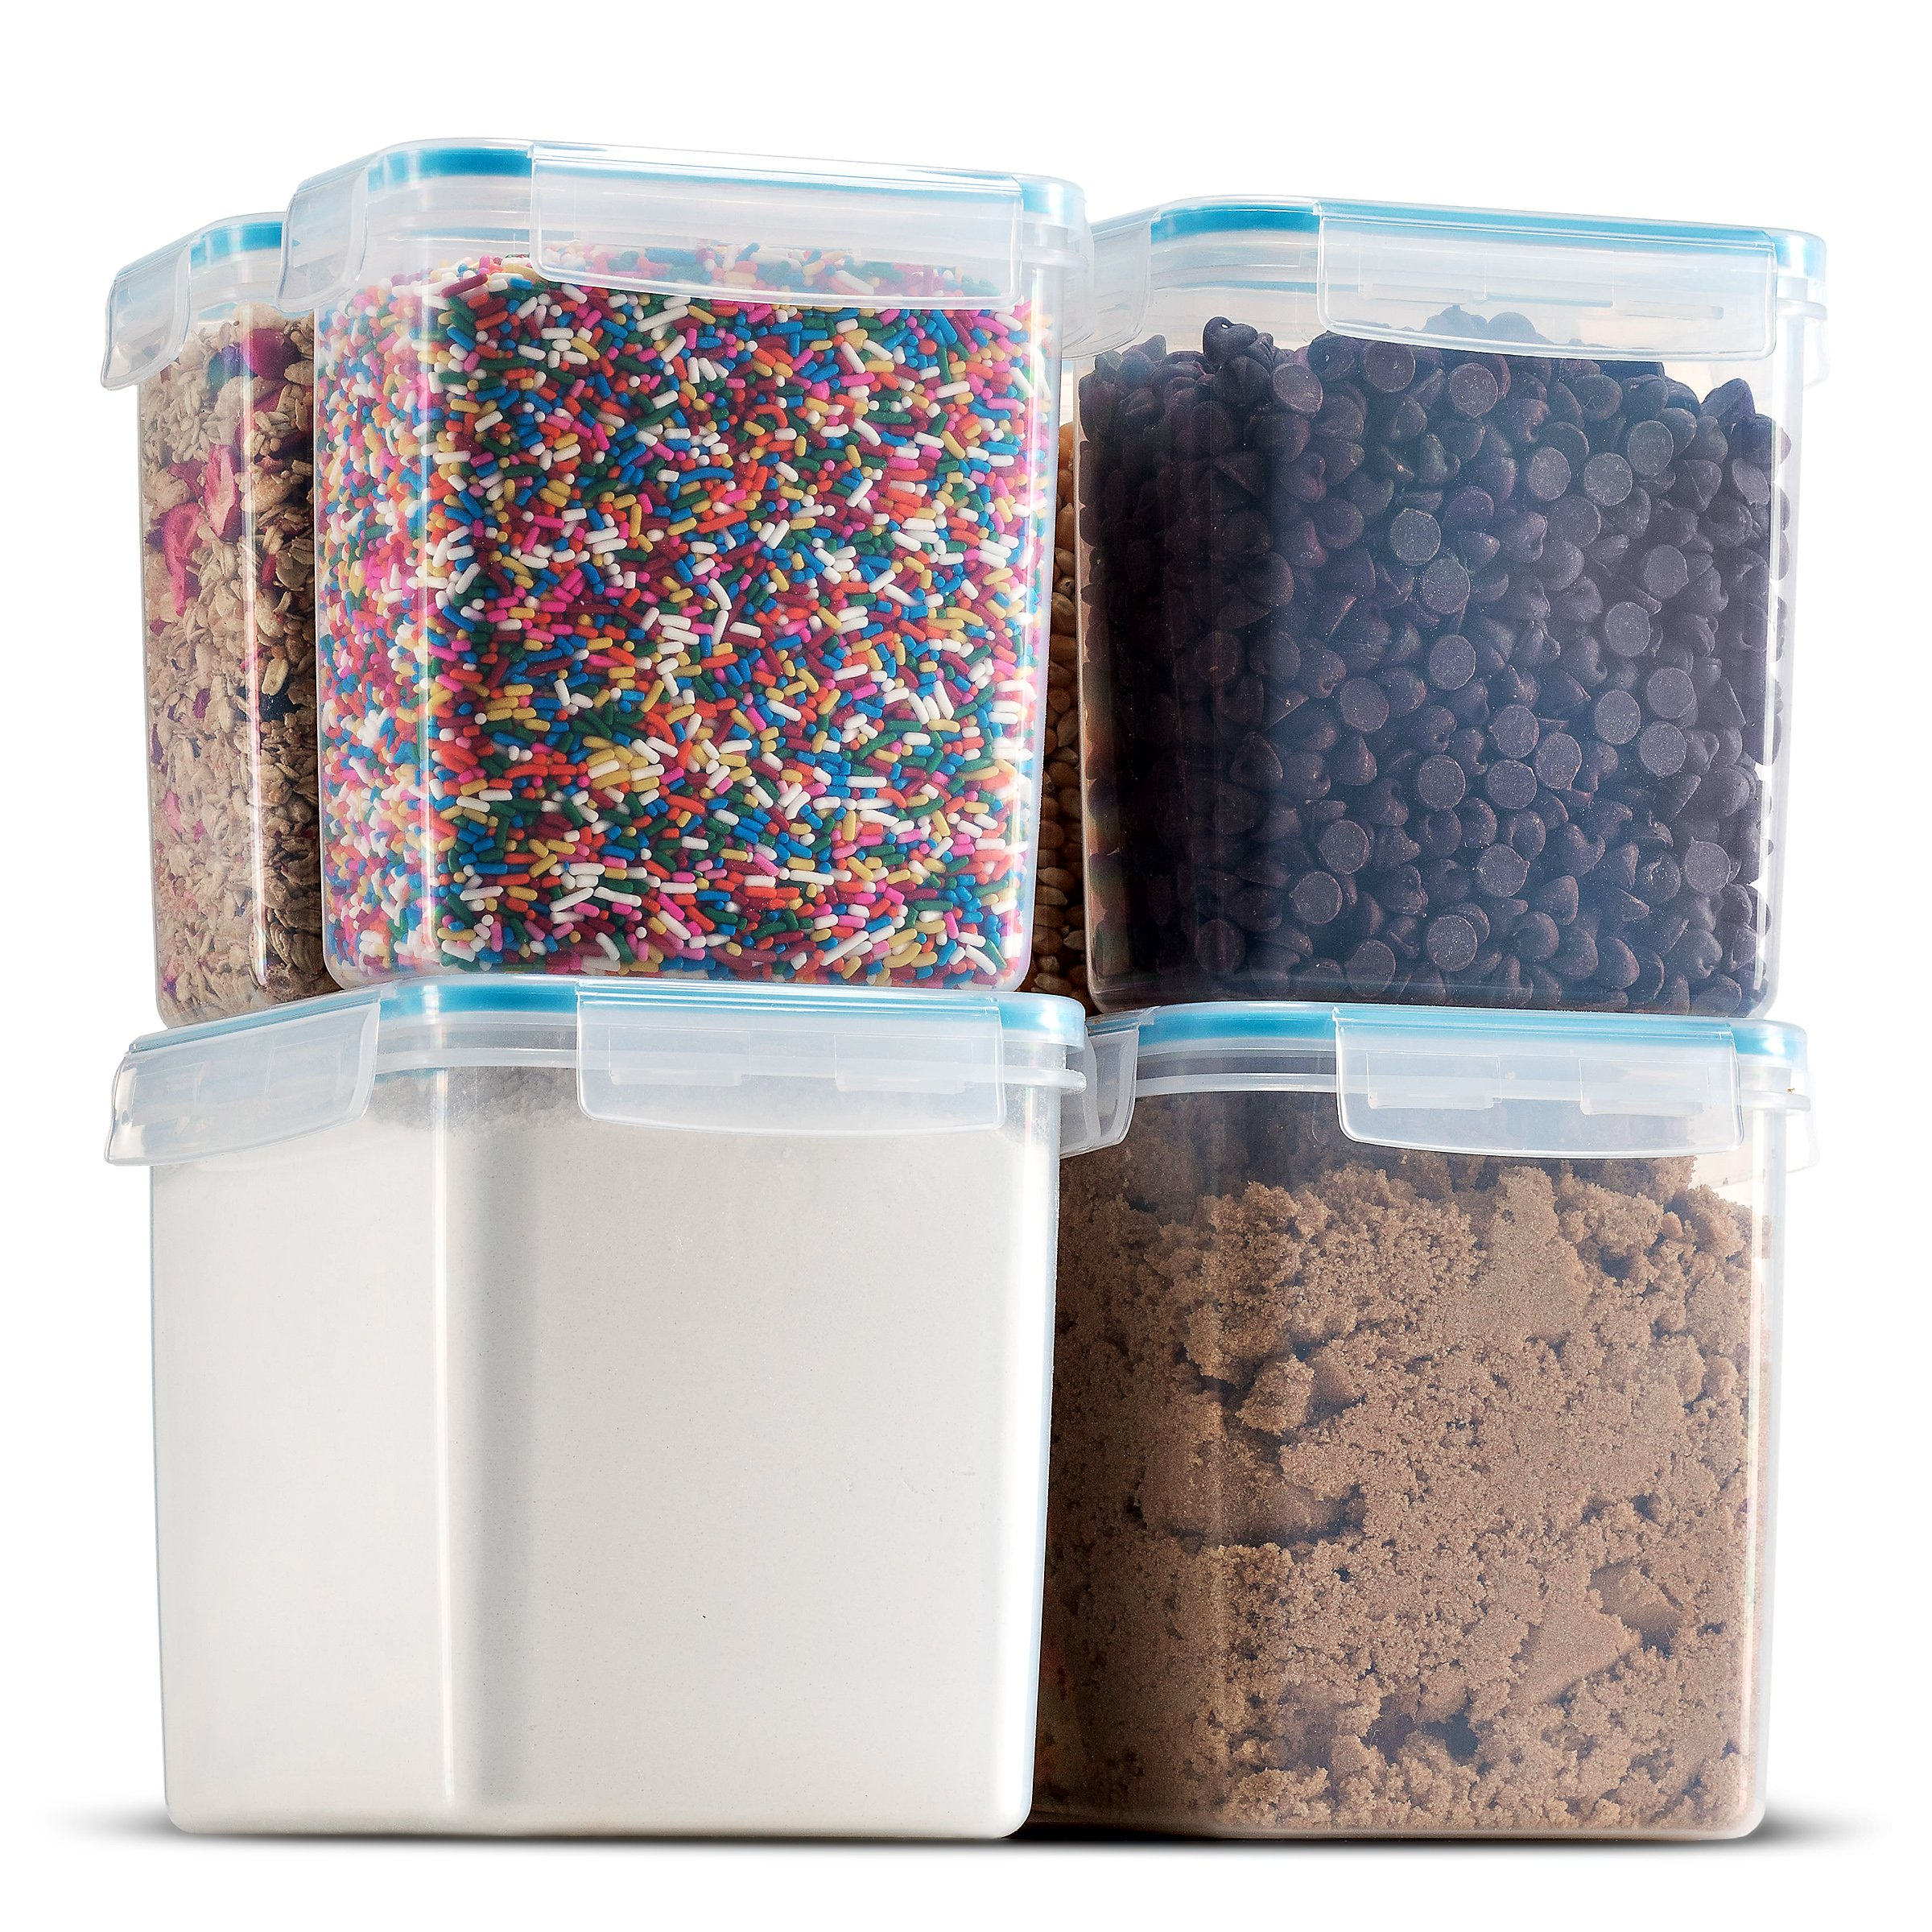 Komax Biokips Food Storage – Sugar, Flour, Baking Ingredients, and Pantry Storage Containers (set of 6) - Airtight, Leakproof With Locking Lids - BPA Free Plastic - Freezer and Dishwasher Safe by Komax